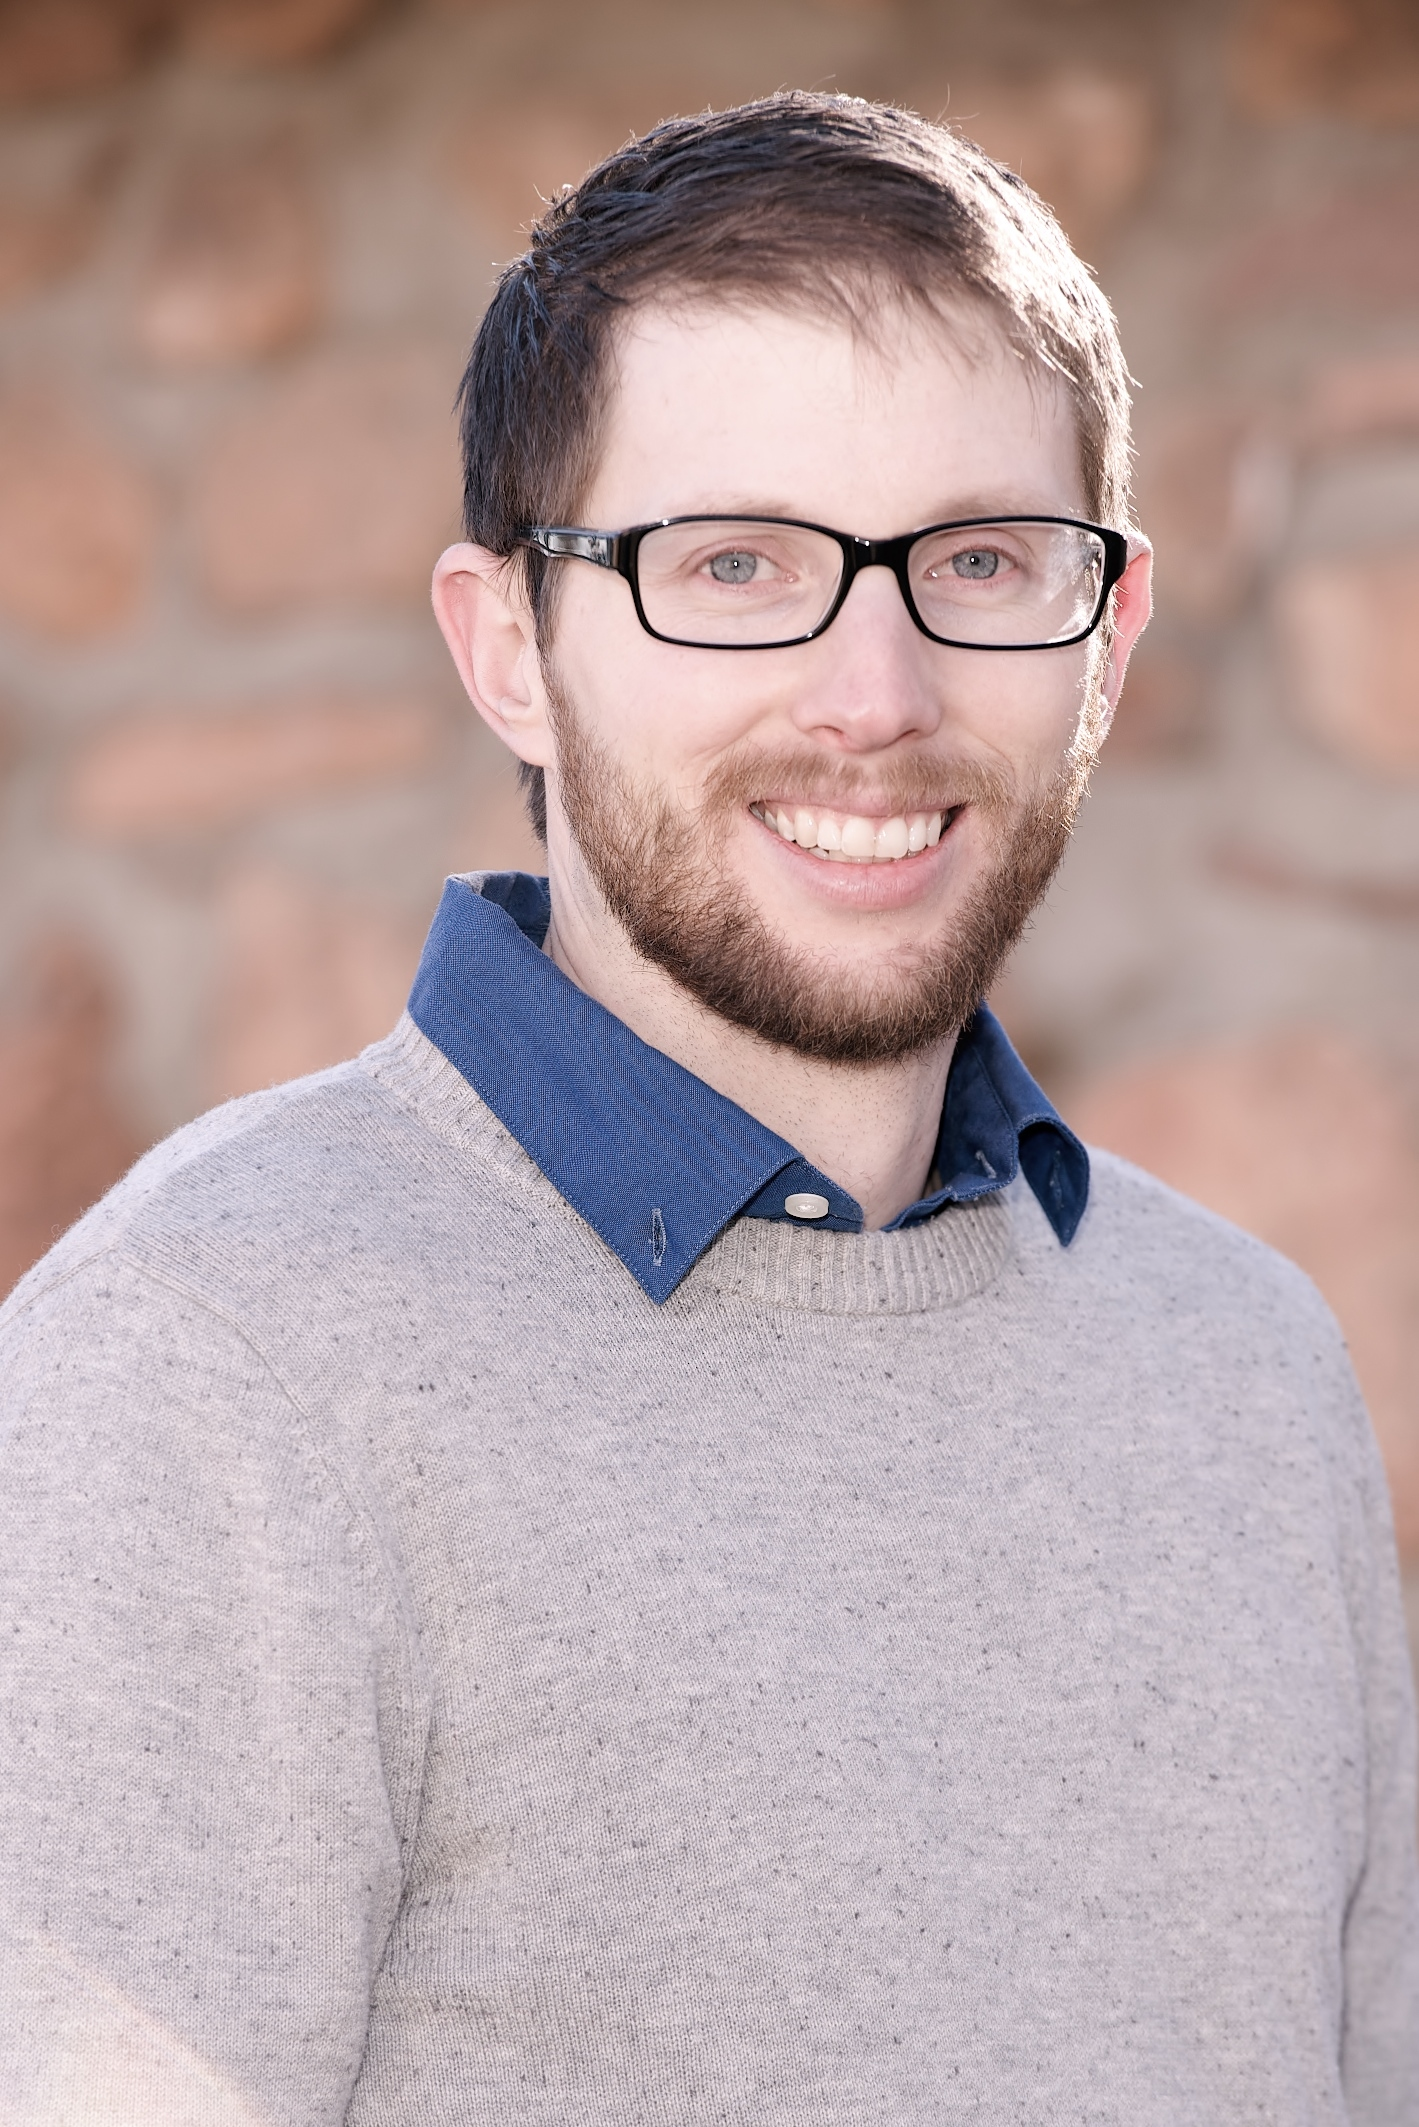 Climate-informed Economic RiskPlanning Ryan Spies is a Water Resources Scientist and Certified Floodplain Manager with Lynker, LLC in Boulder, Colorado. Ryan specializes in geospatial hazard data analysis and climate-informed economic impact assessments.